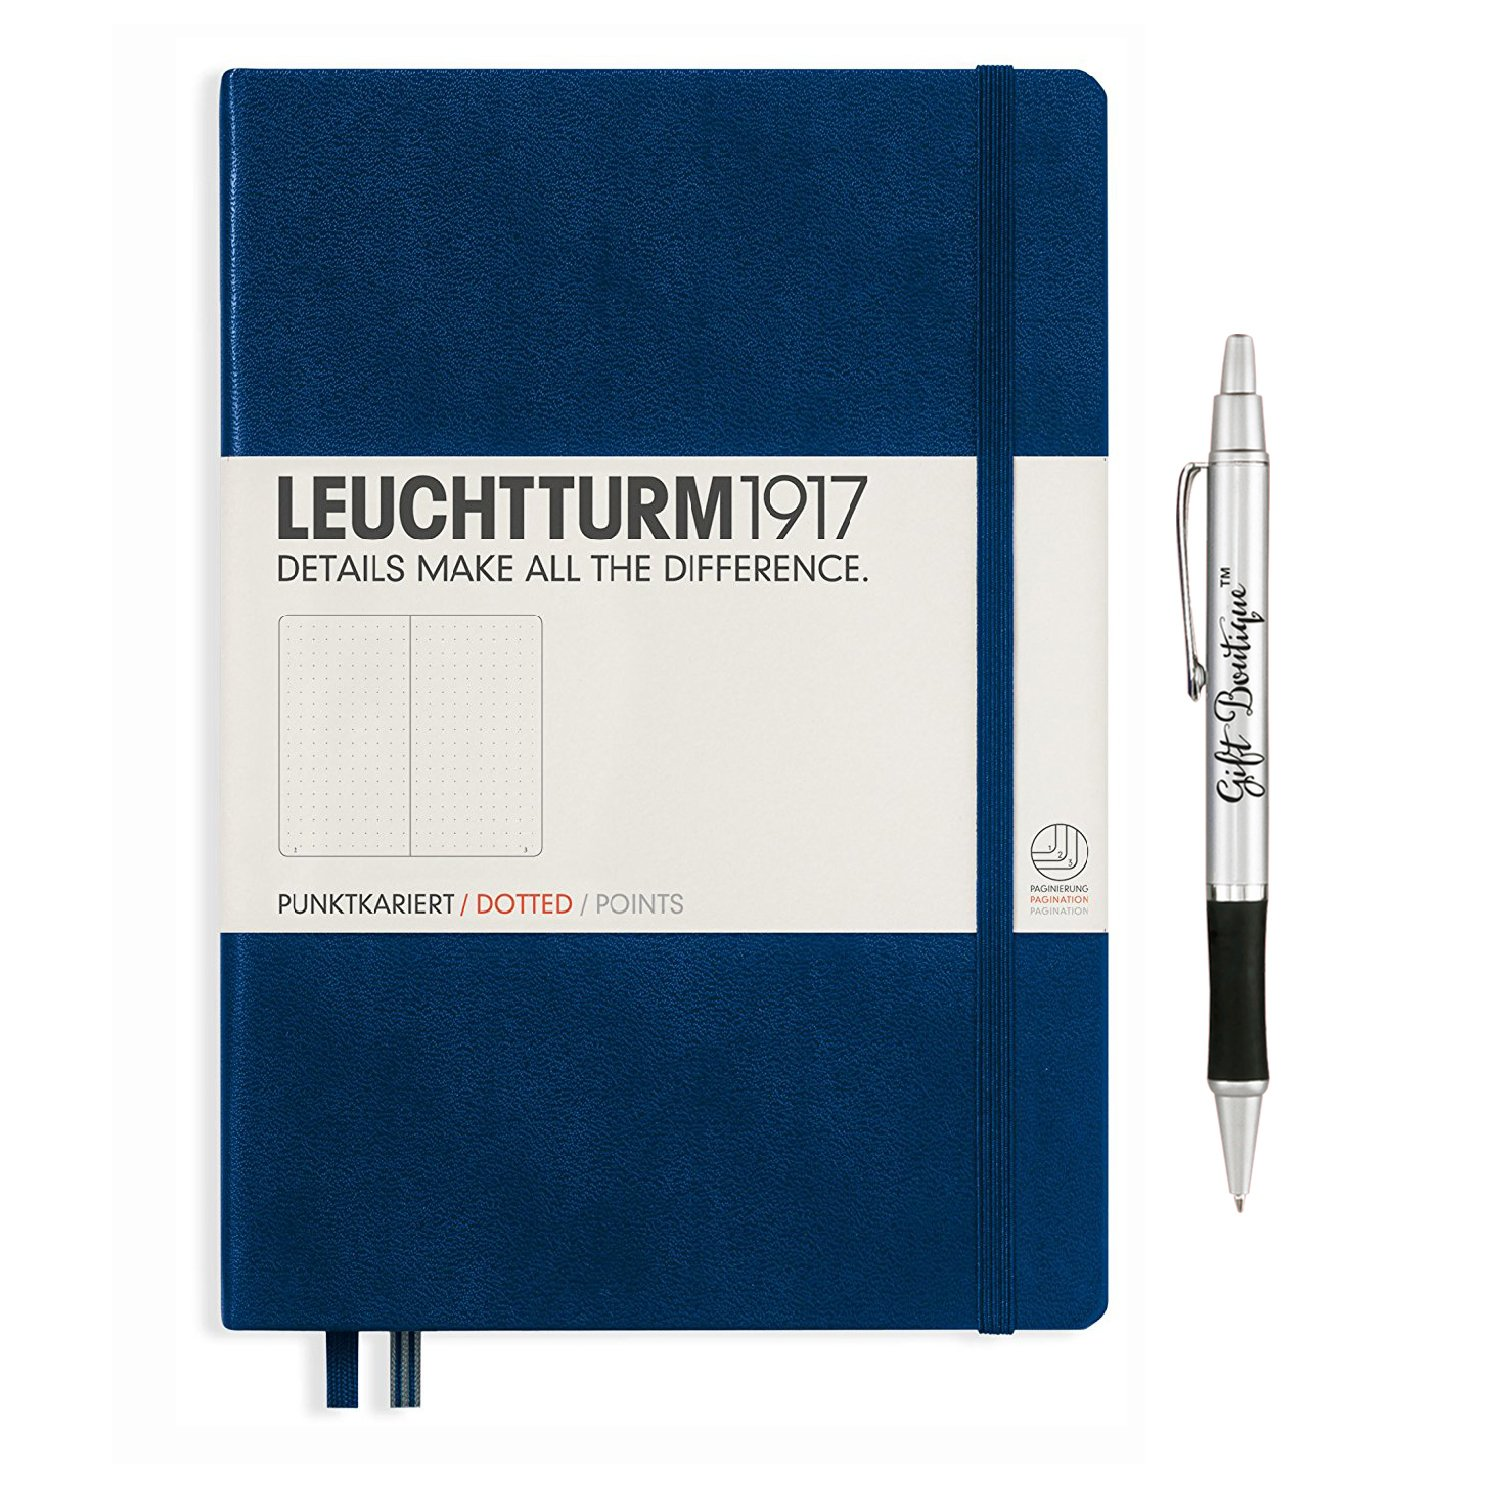 Leuchtturm1917 Medium Size Hardcover A5 Navy Notebook - Dotted Pages with Gift Boutique Pen